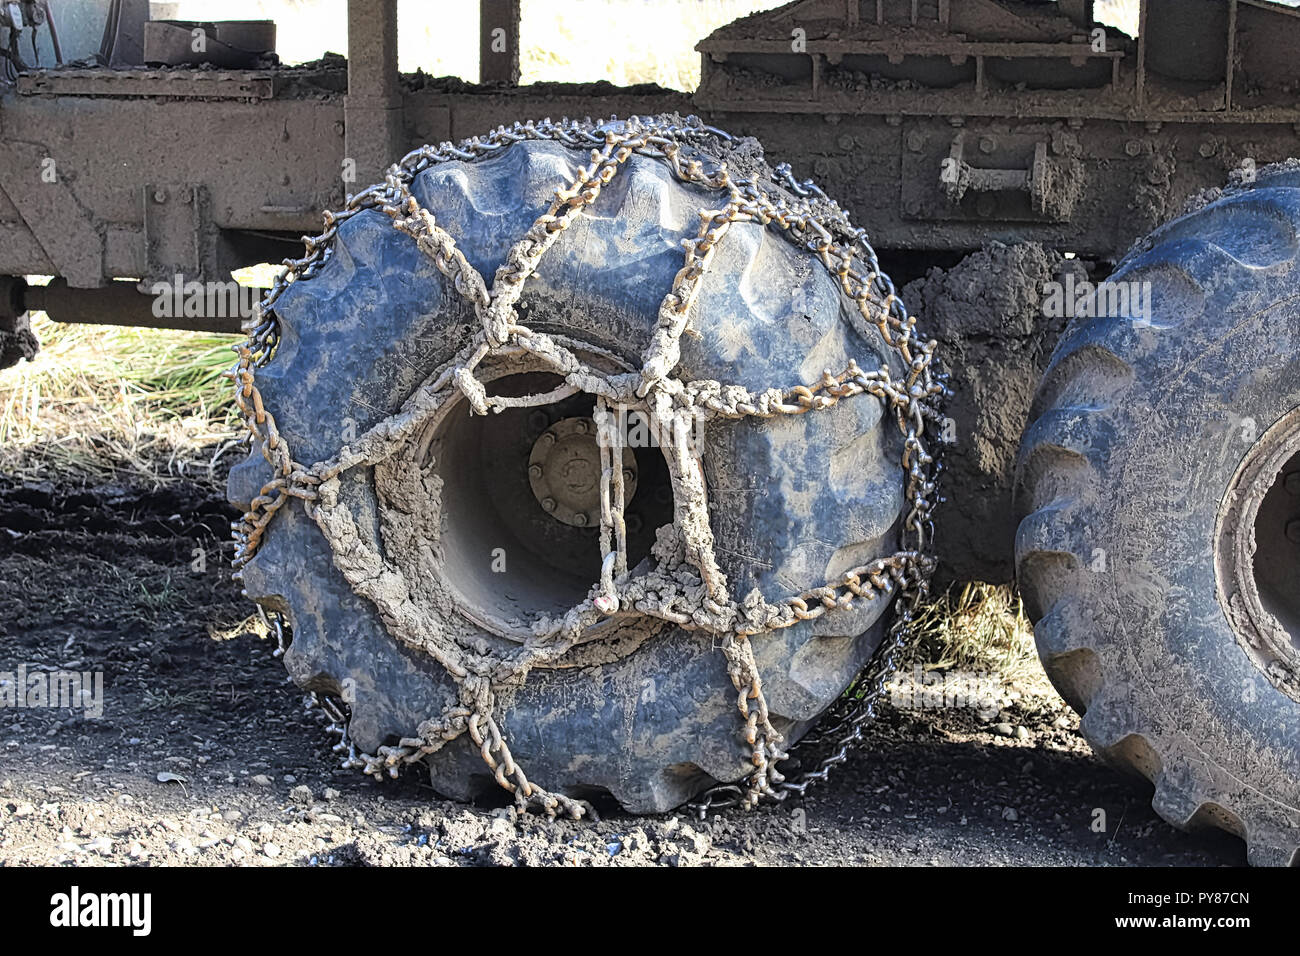 Chains used on a heavy equipment tire for grip - Stock Image